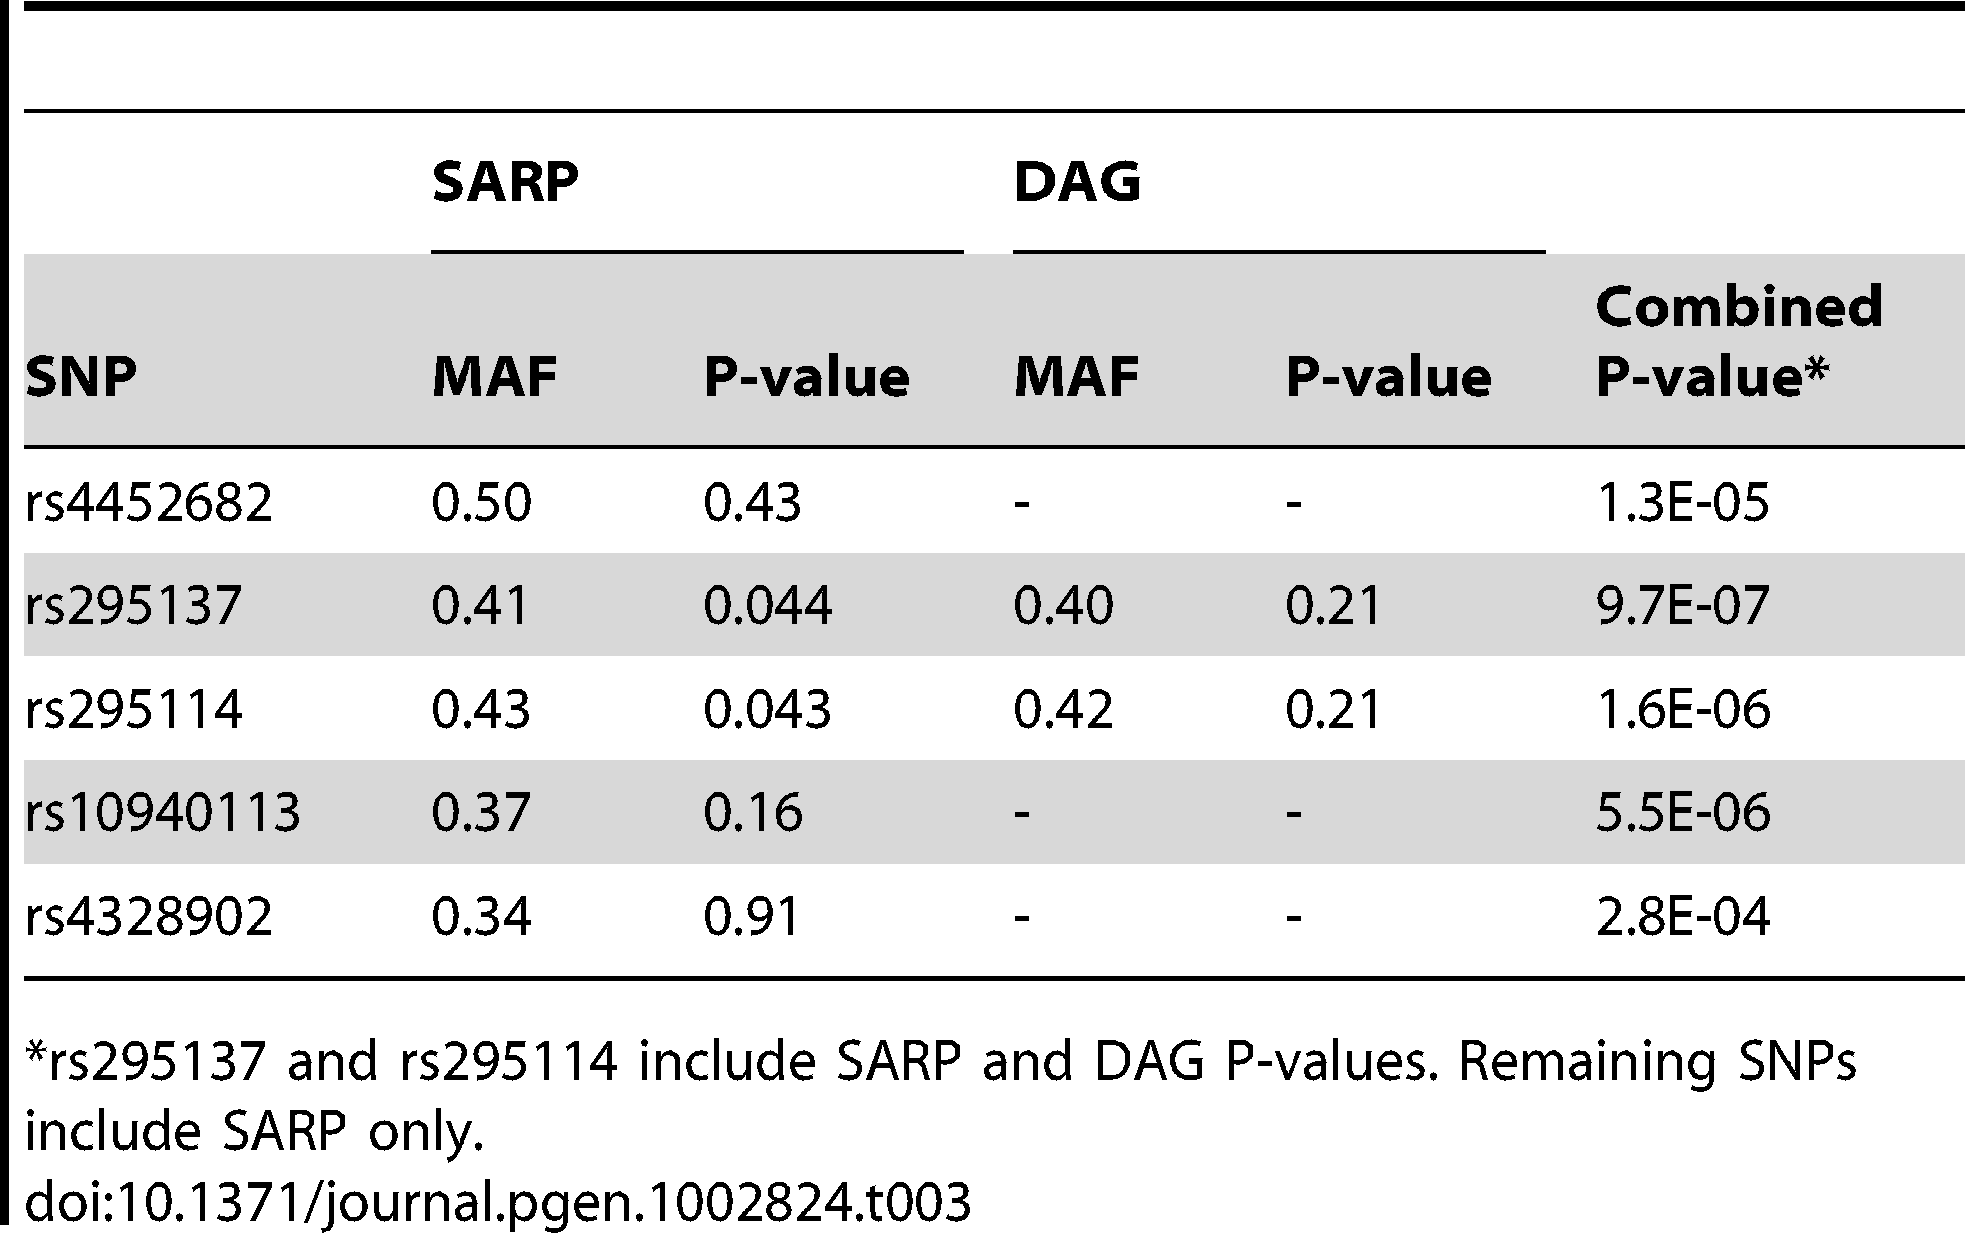 Replication study of top SNPs in two independent populations (SARP and DAG).